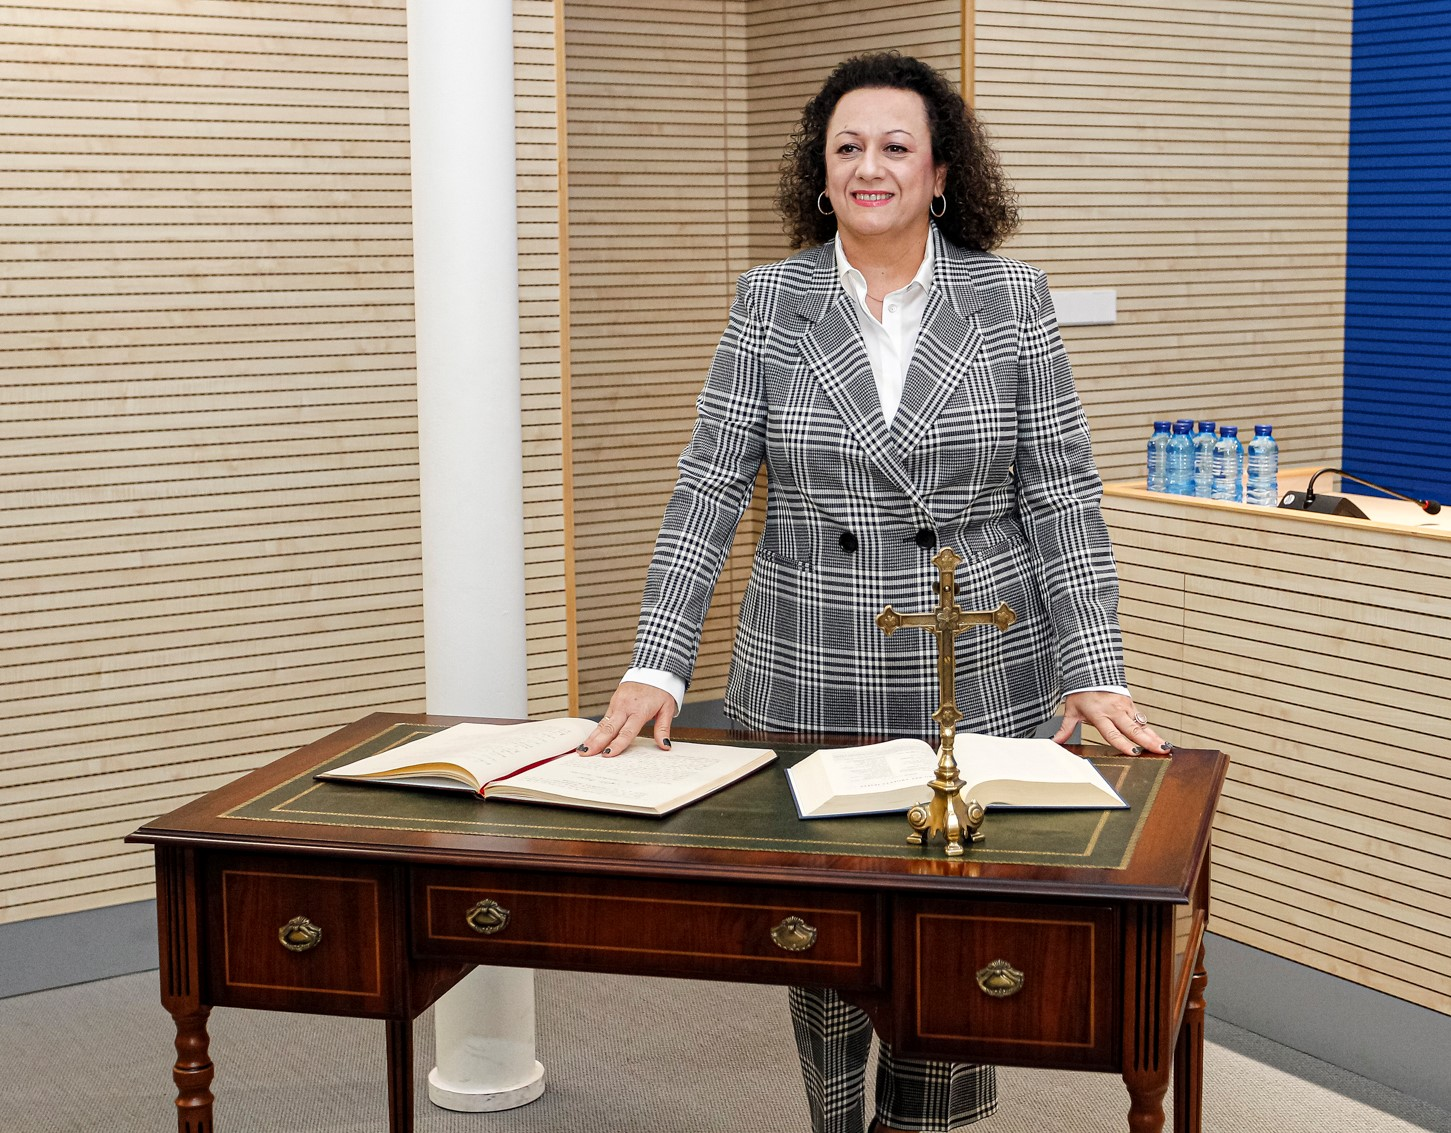 YOLANDA MUÑOZ TAKES OFFICE AS PRESIDENT OF THE PORT AUTHORITY OF CARTAGENA